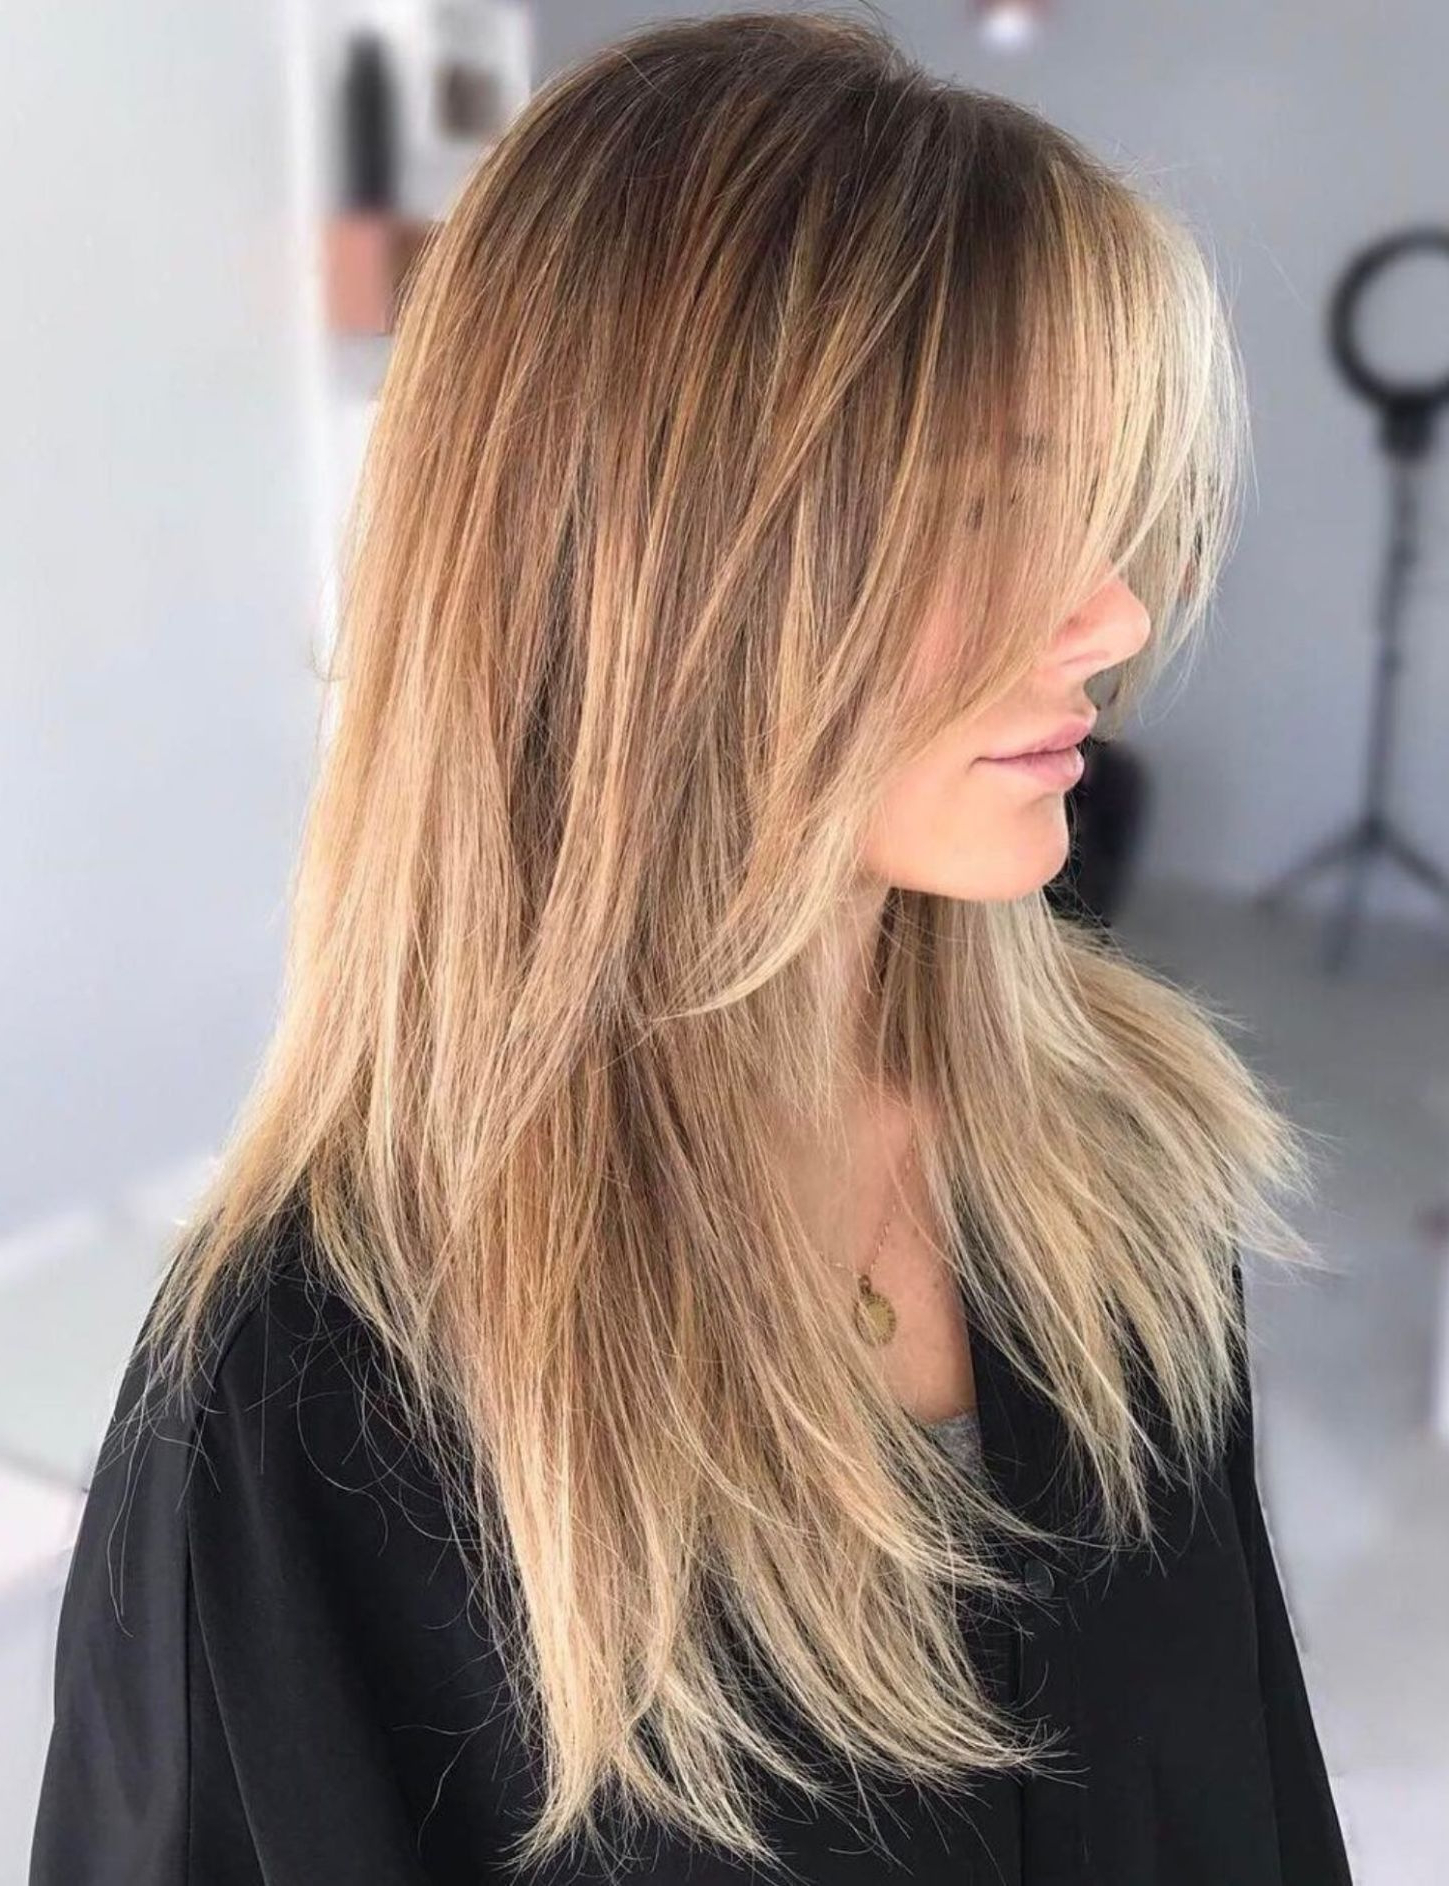 Fashion : Long Straight Hair With Layers And Bangs 40 Inspiration For Best And Newest Straight Layered For Long Hairstyles (View 11 of 20)